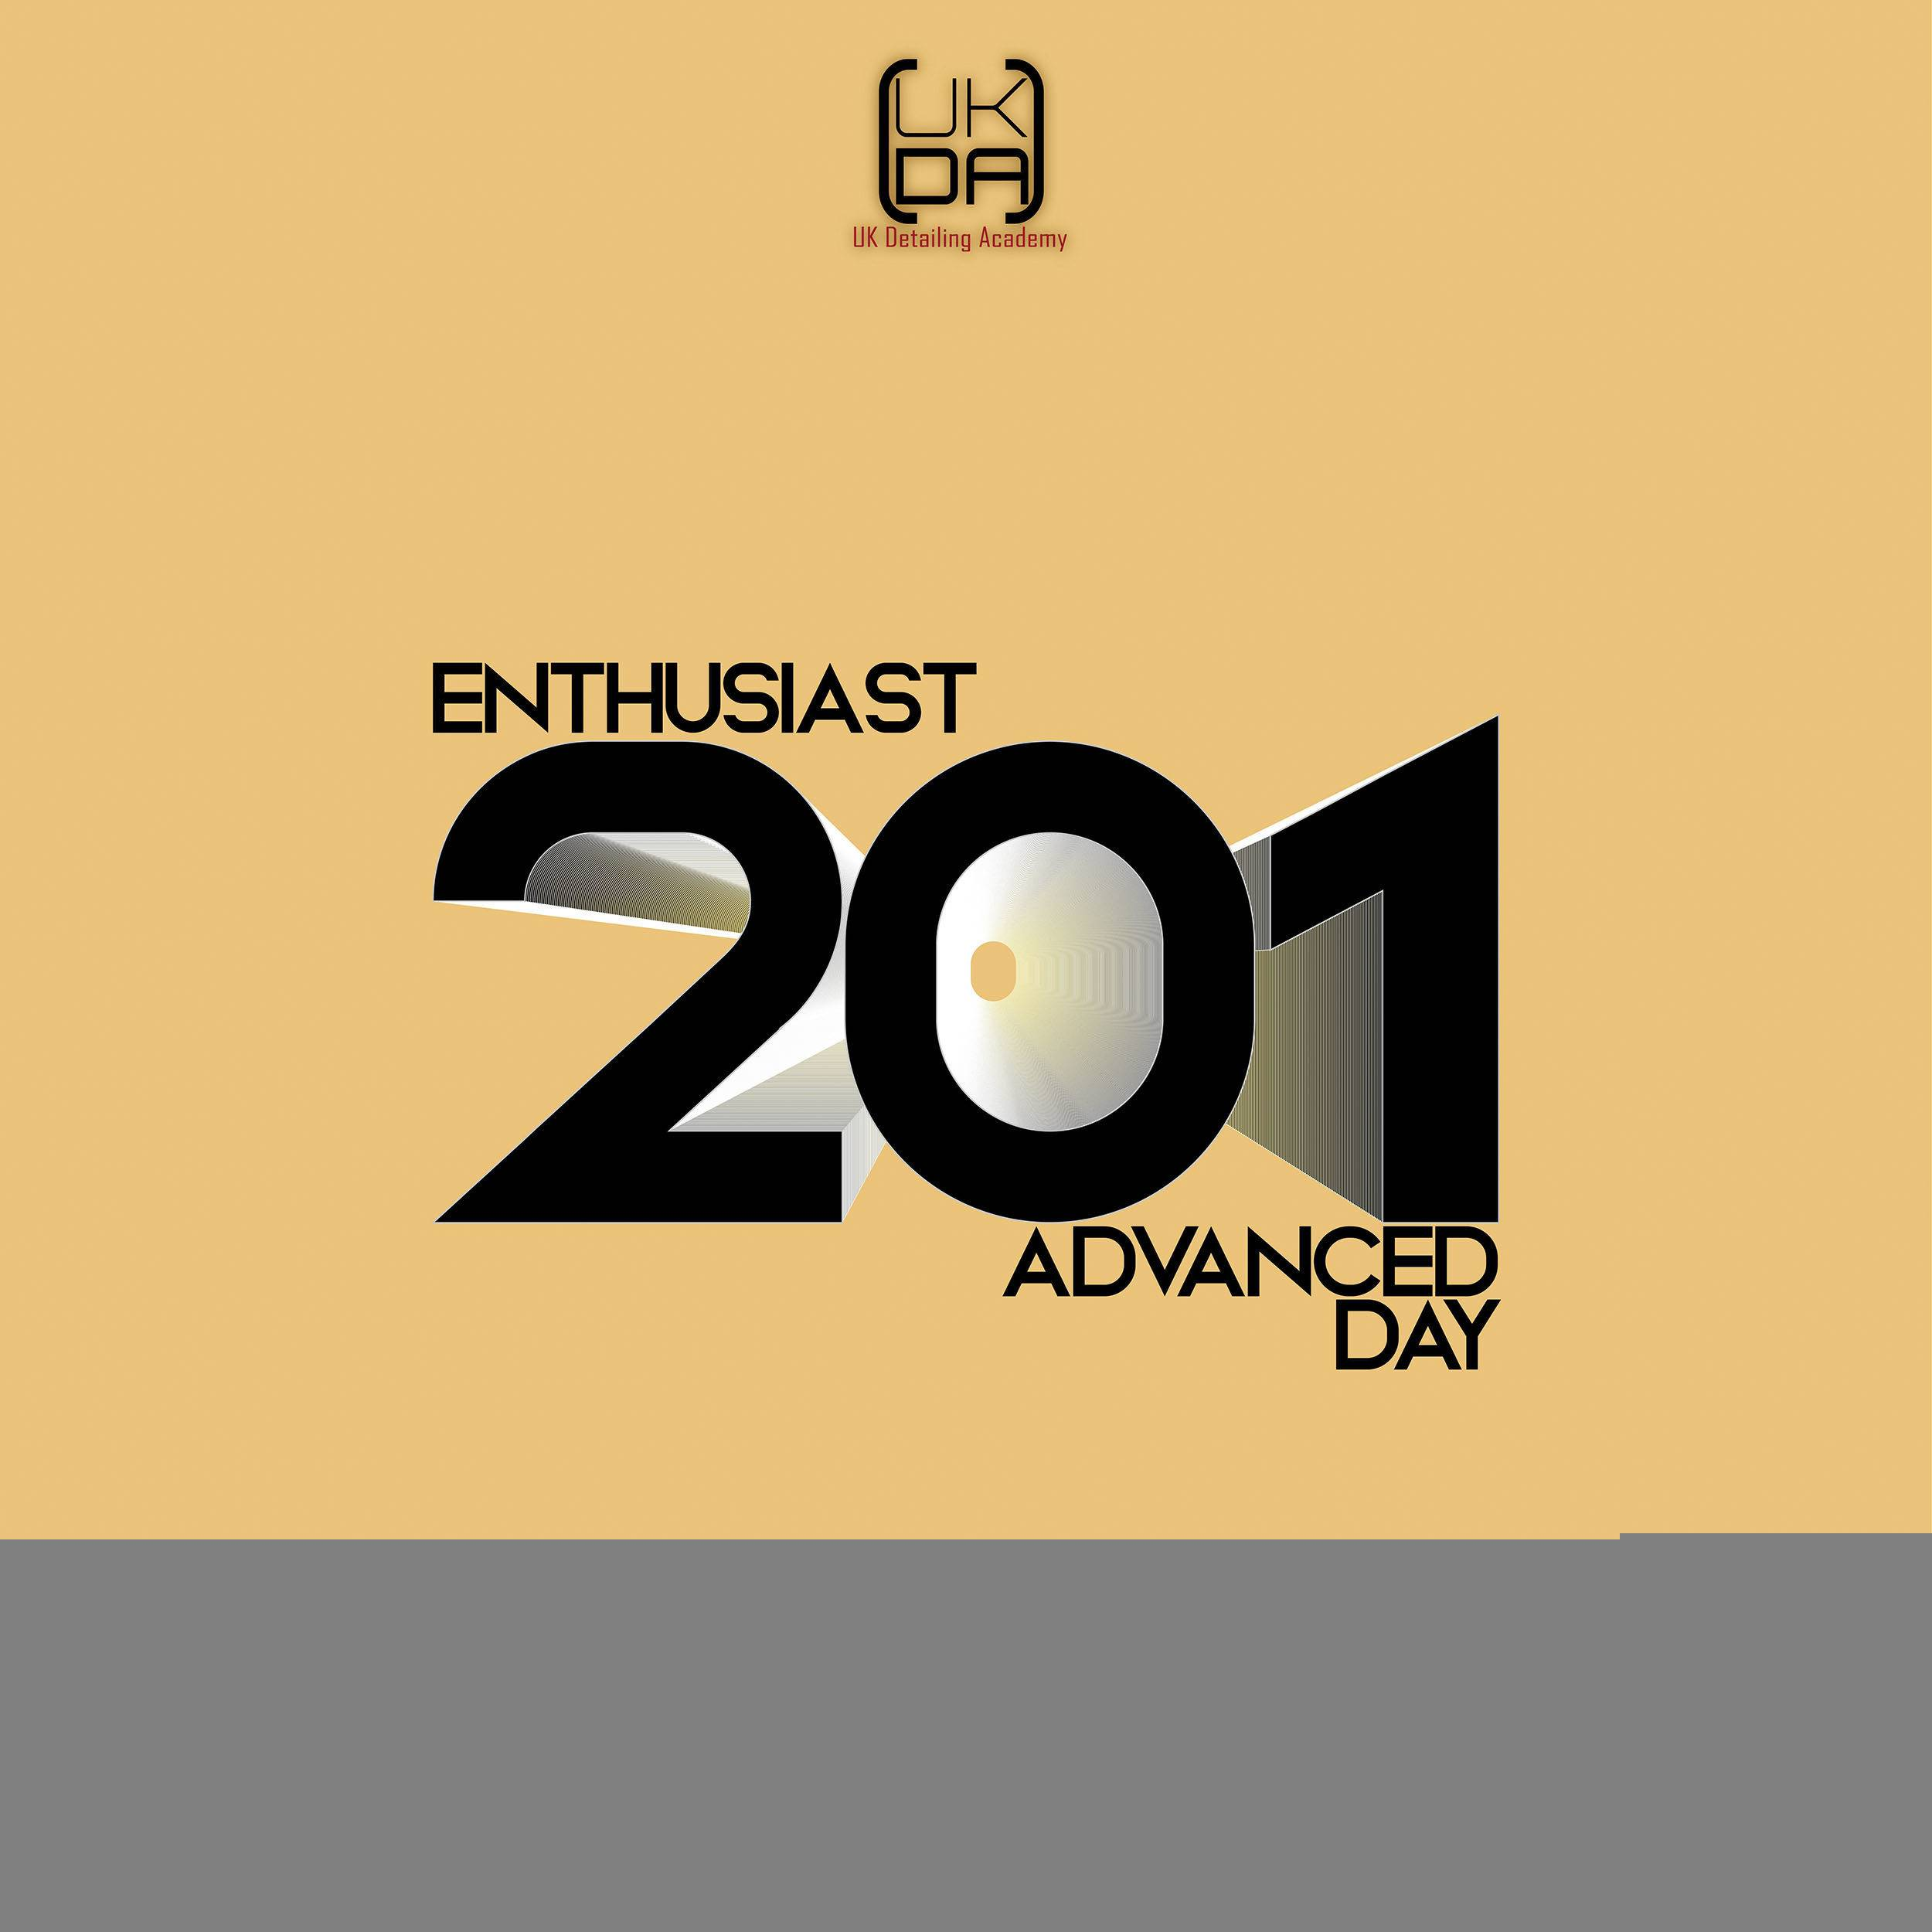 New 201 Enthusiast Course